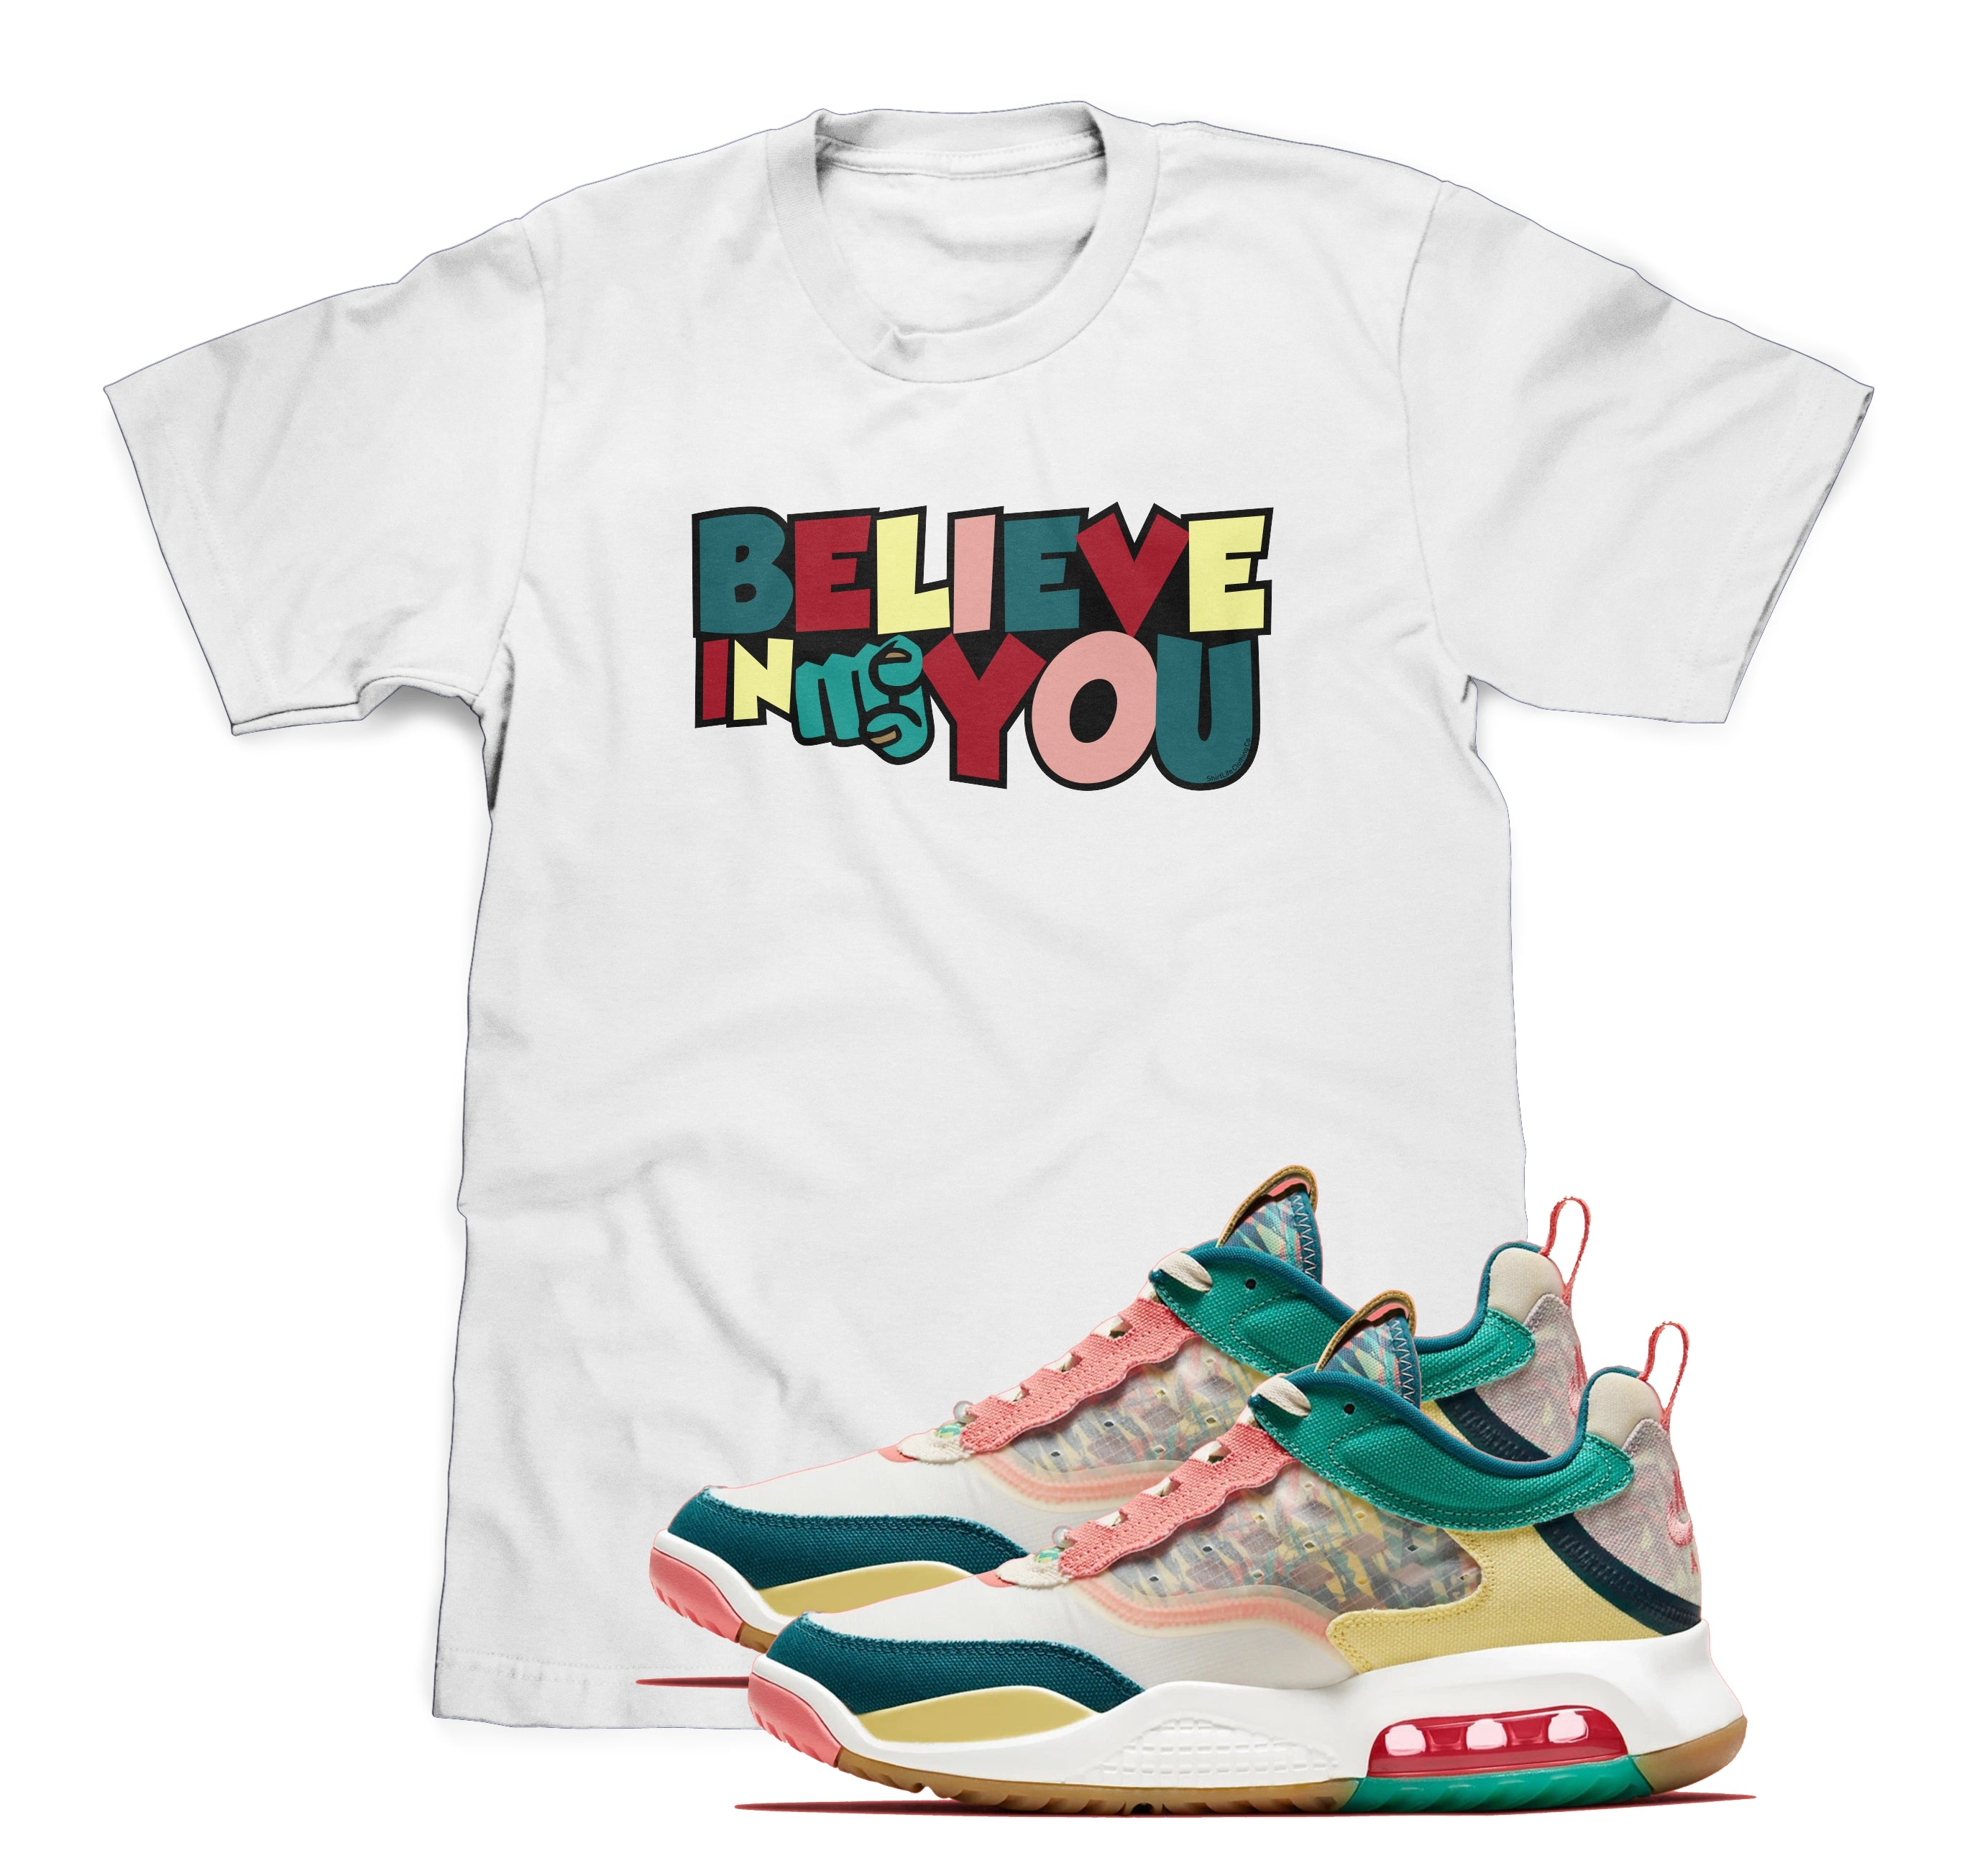 Believe In You Shirt Designed To Match Jordan Air Max 200 Super Bowl LIV Sneakers